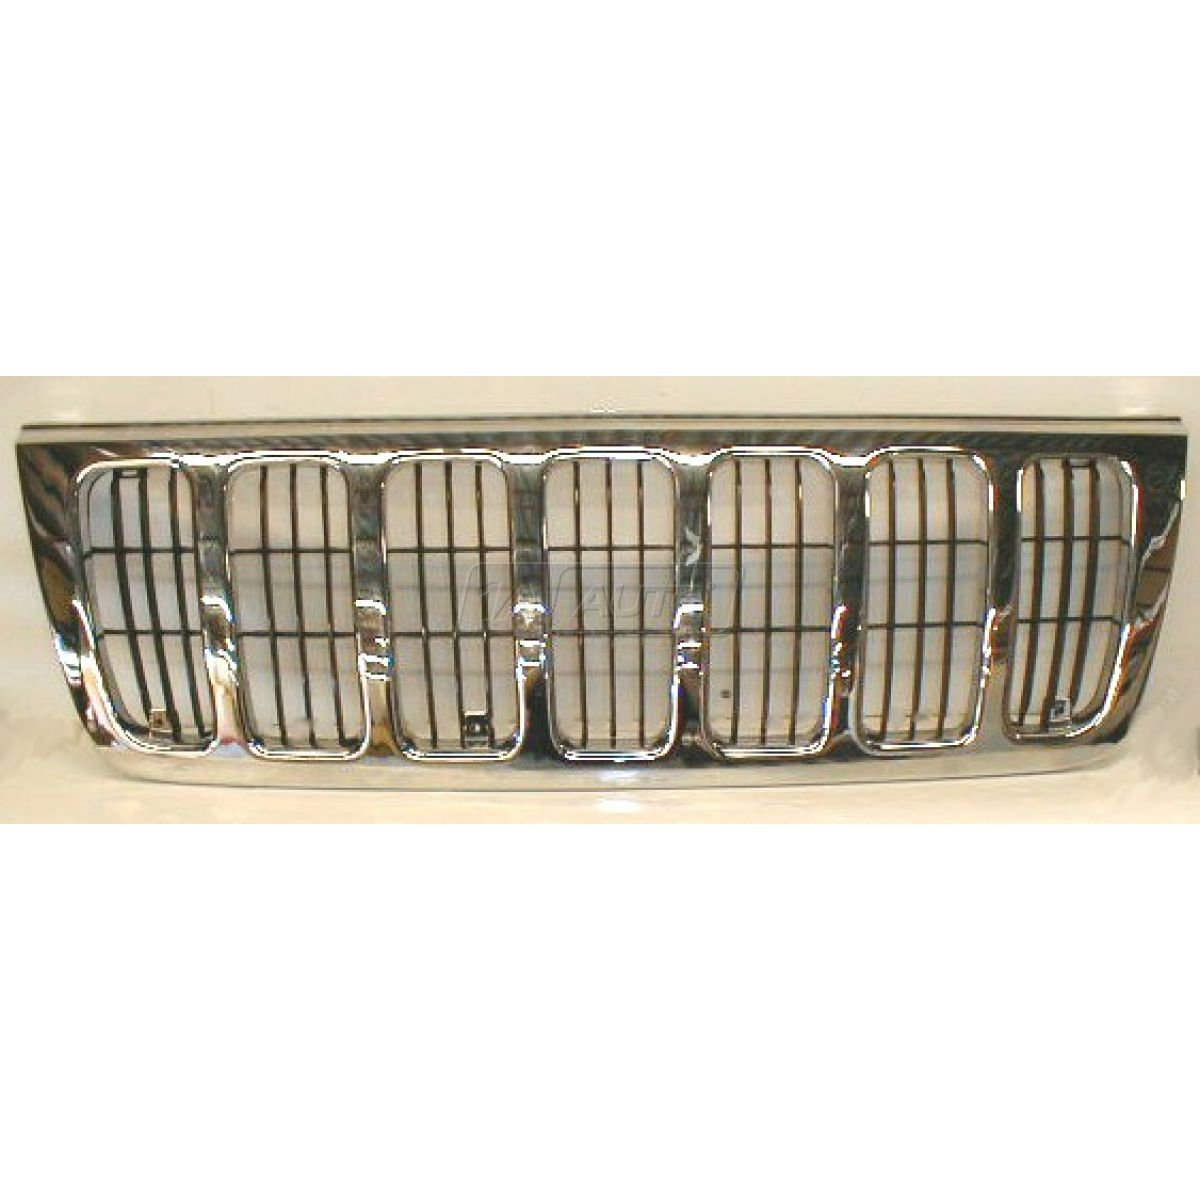 grill chrome grand new avanza perbedaan veloz 1.3 dan 1.5 front end grille and black for 99 03 jeep